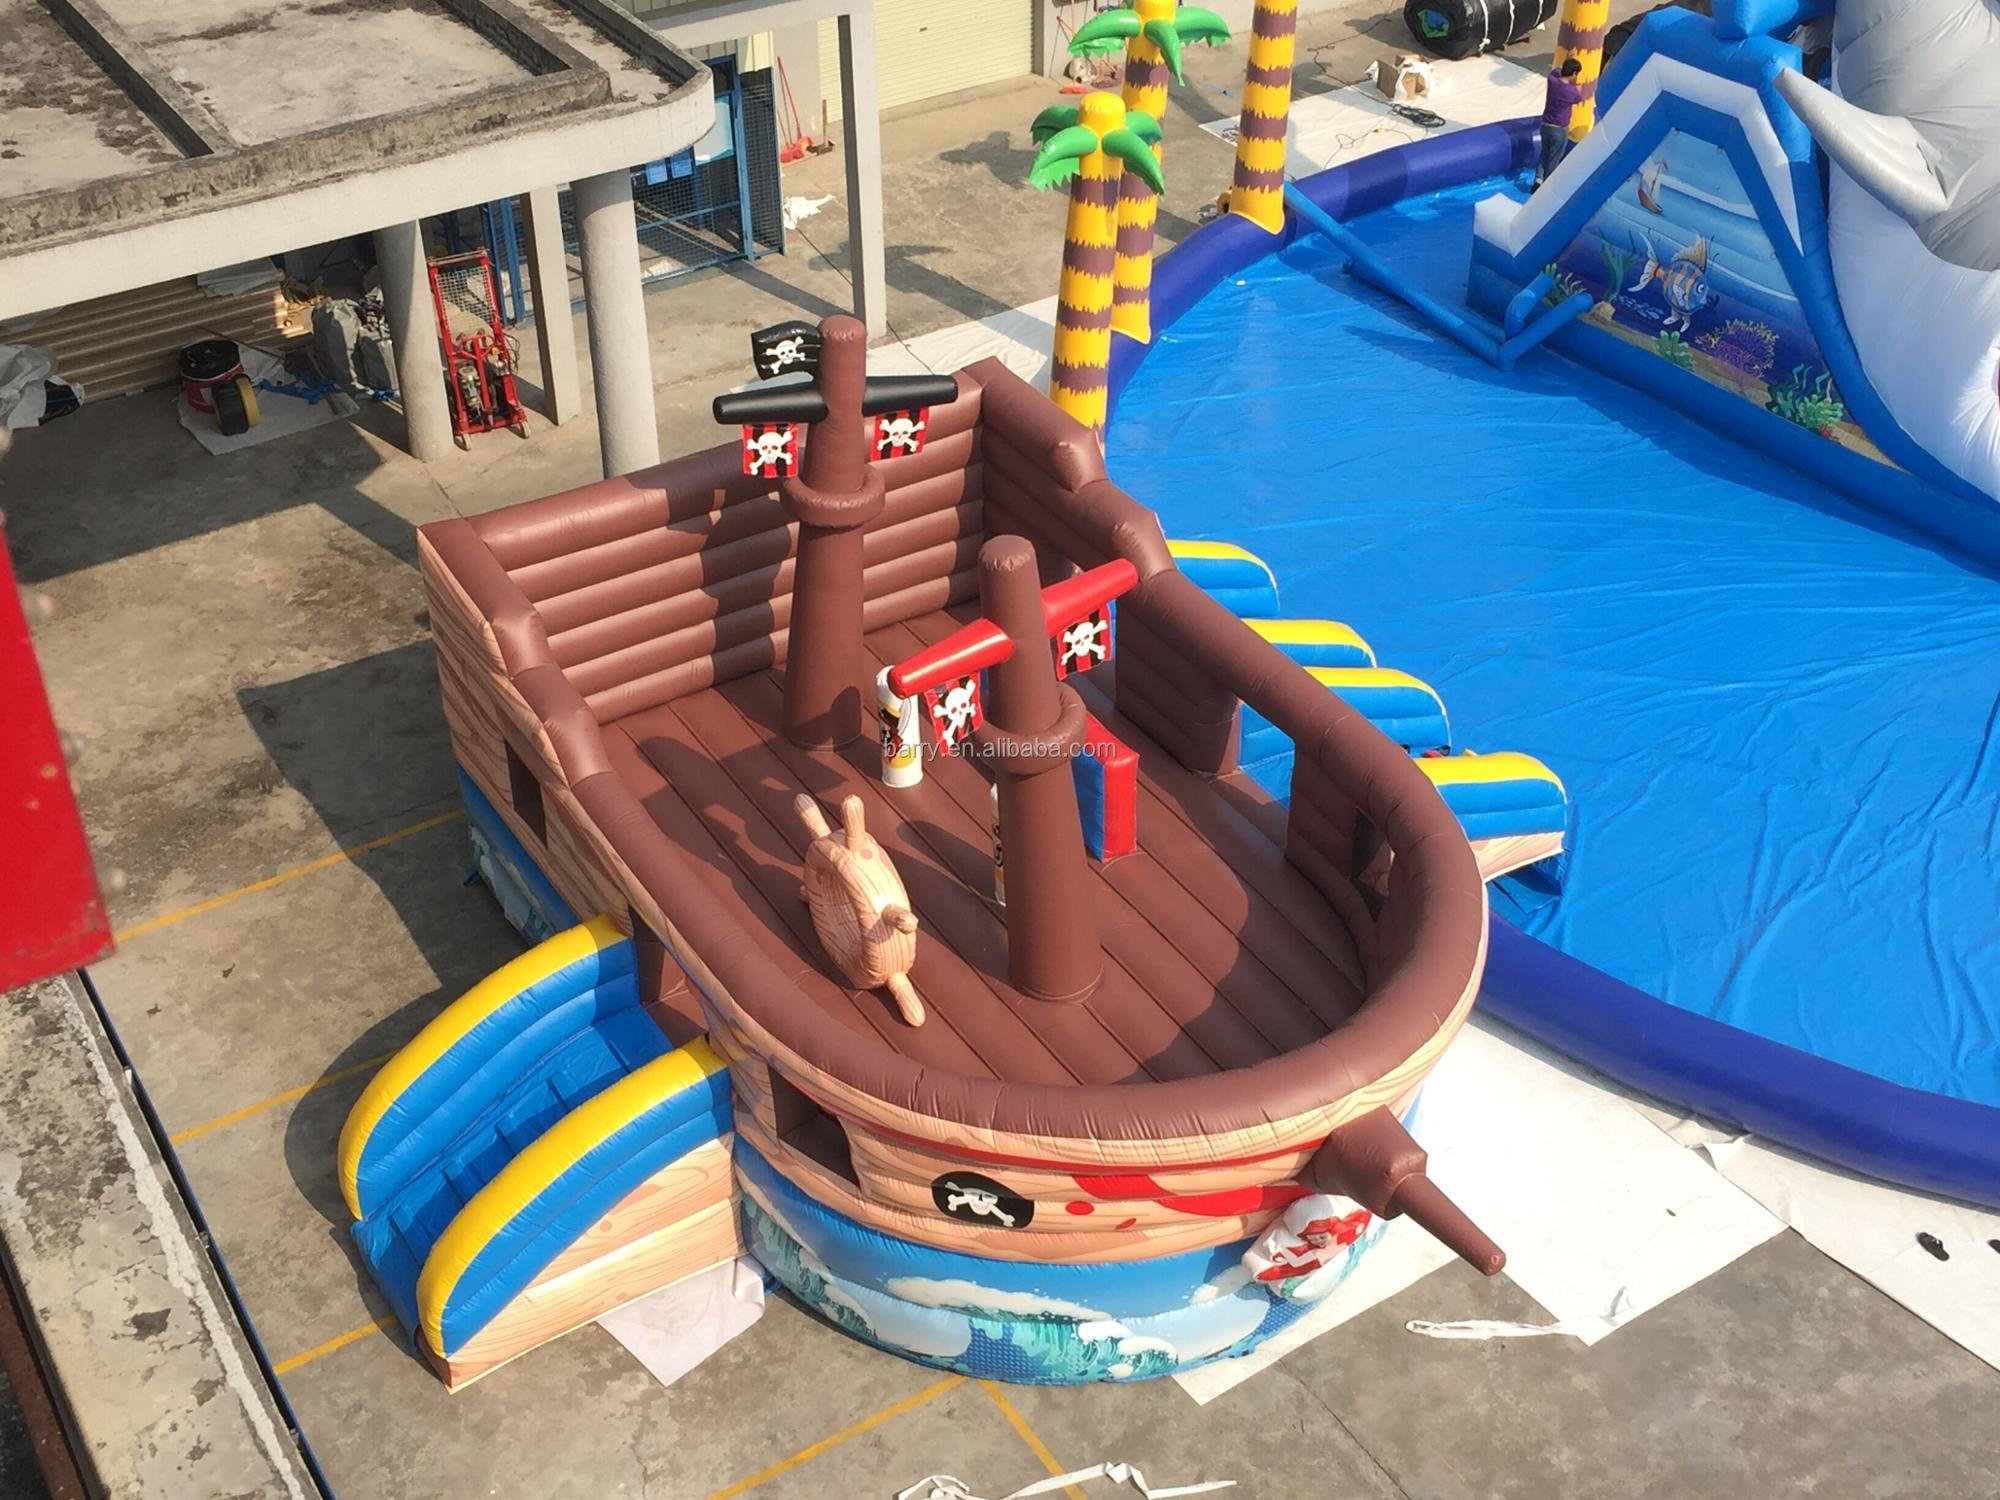 commercial inflatable water slide pirate ship slide and shark water park, gaint inflatable water park with mini slide